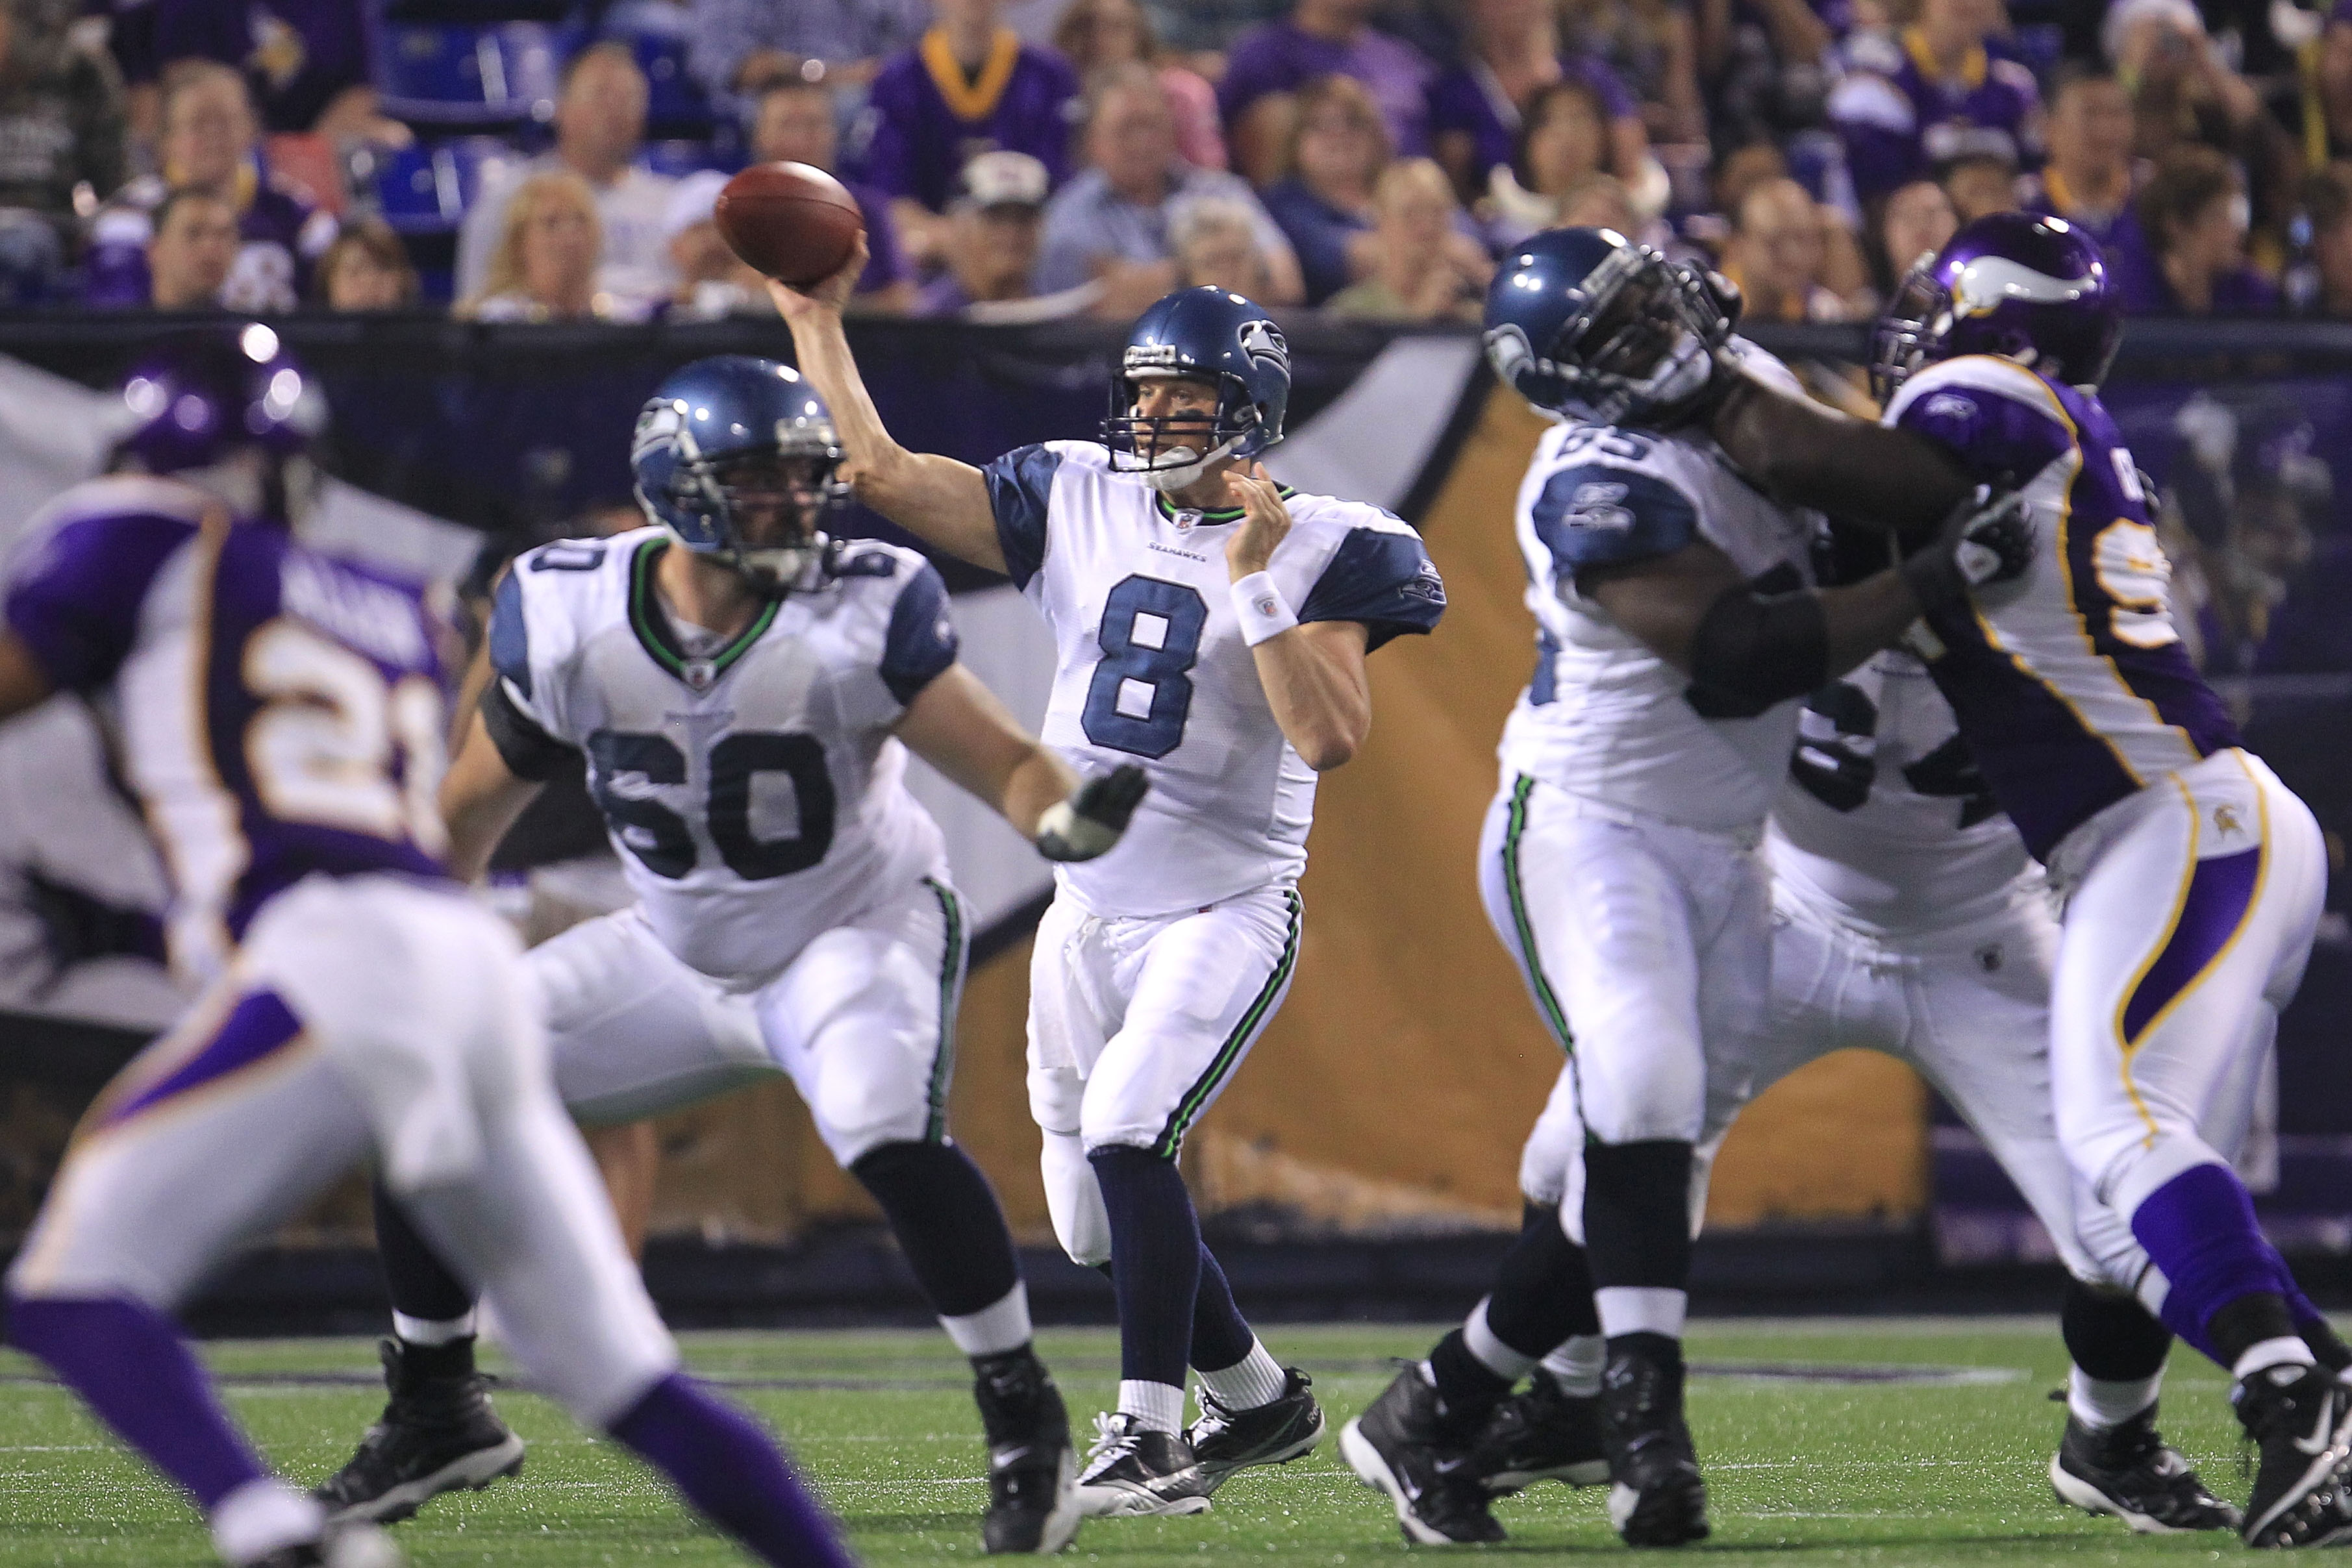 MINNEAPOLIS - AUGUST 28:  Matt Hasselbeck #8 of the Seattle Seahawks throws a pass against the Minnesota Vikings during a preseason NFL game at Mall of America Field at the Hubert H. Humphrey Metrodome on August 28, 2010  in Minneapolis, Minnesota.  (Phot